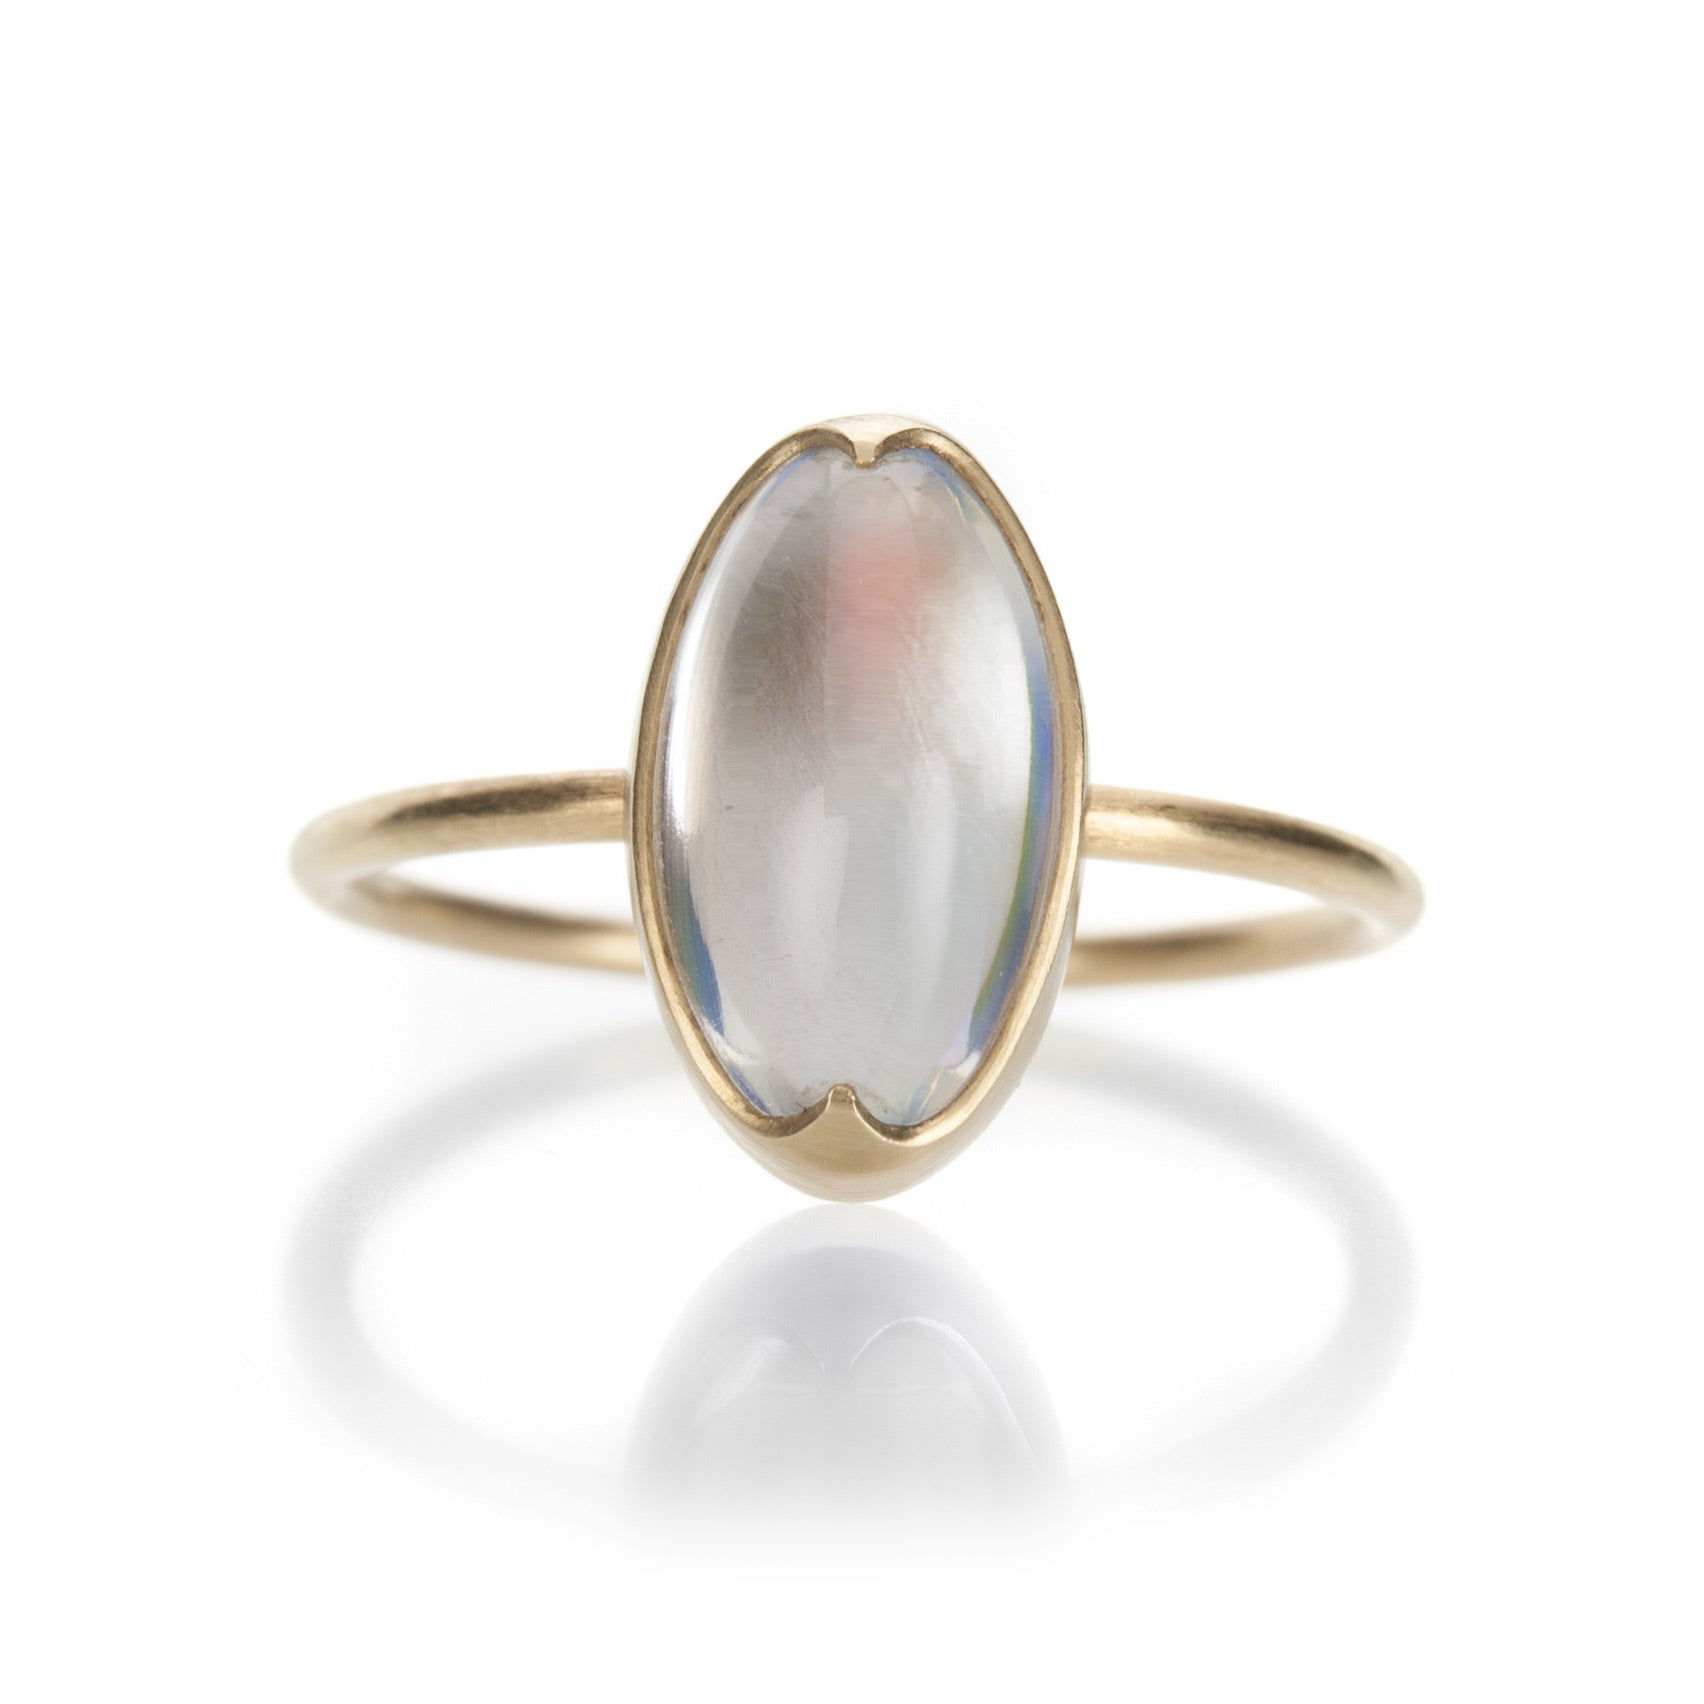 260b7672491e3 Elongated Oval Rainbow Moonstone Ring